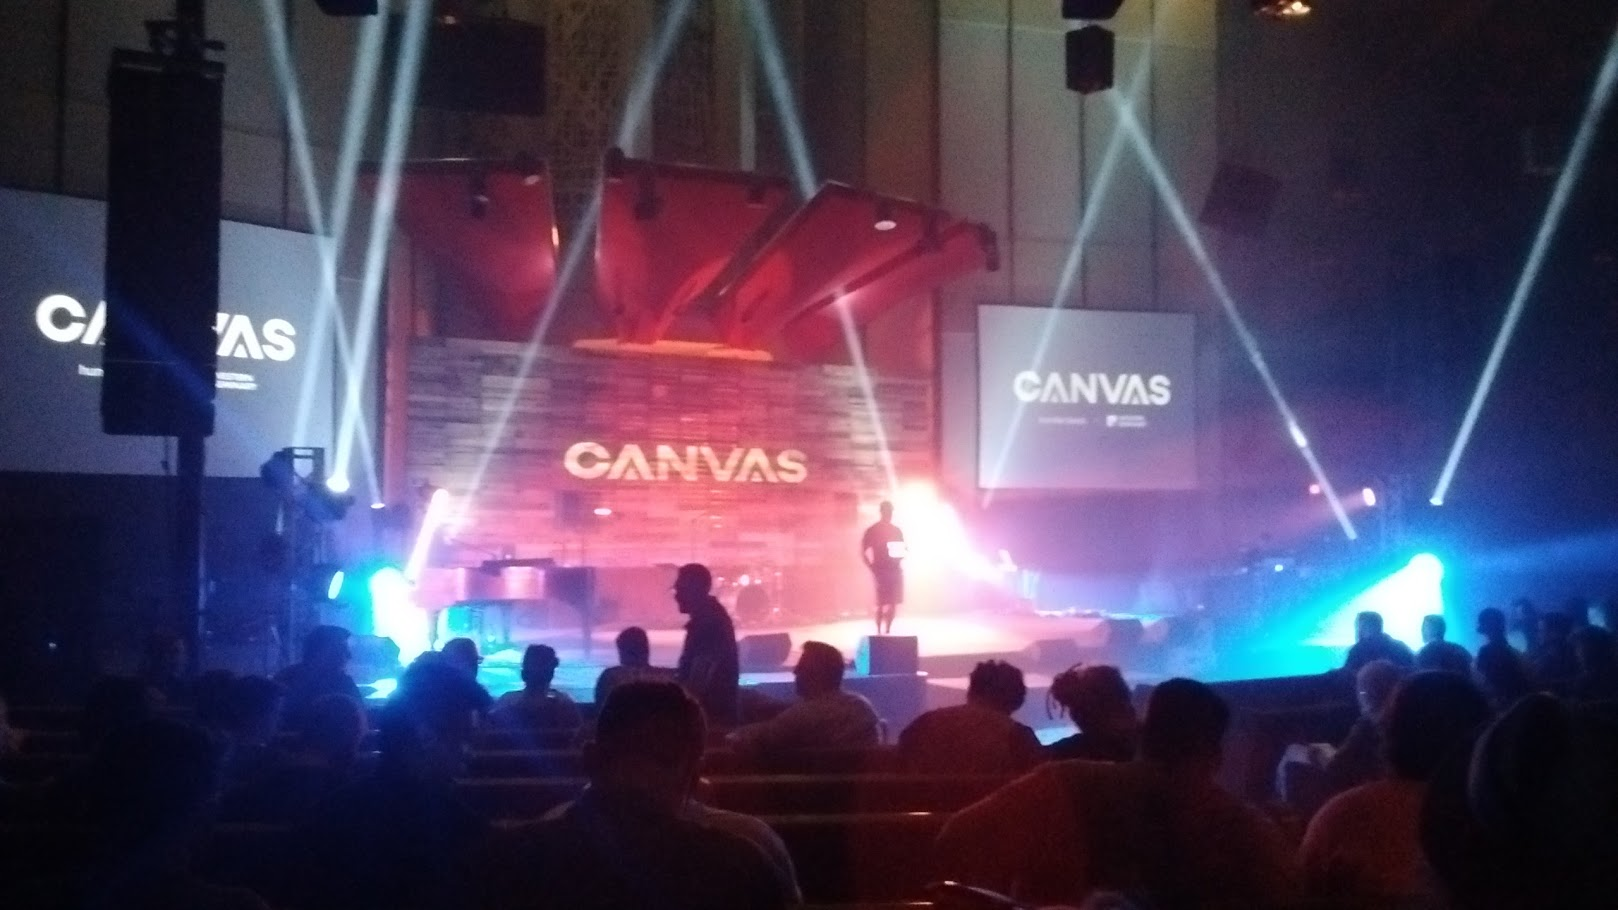 canvas-conference-stage